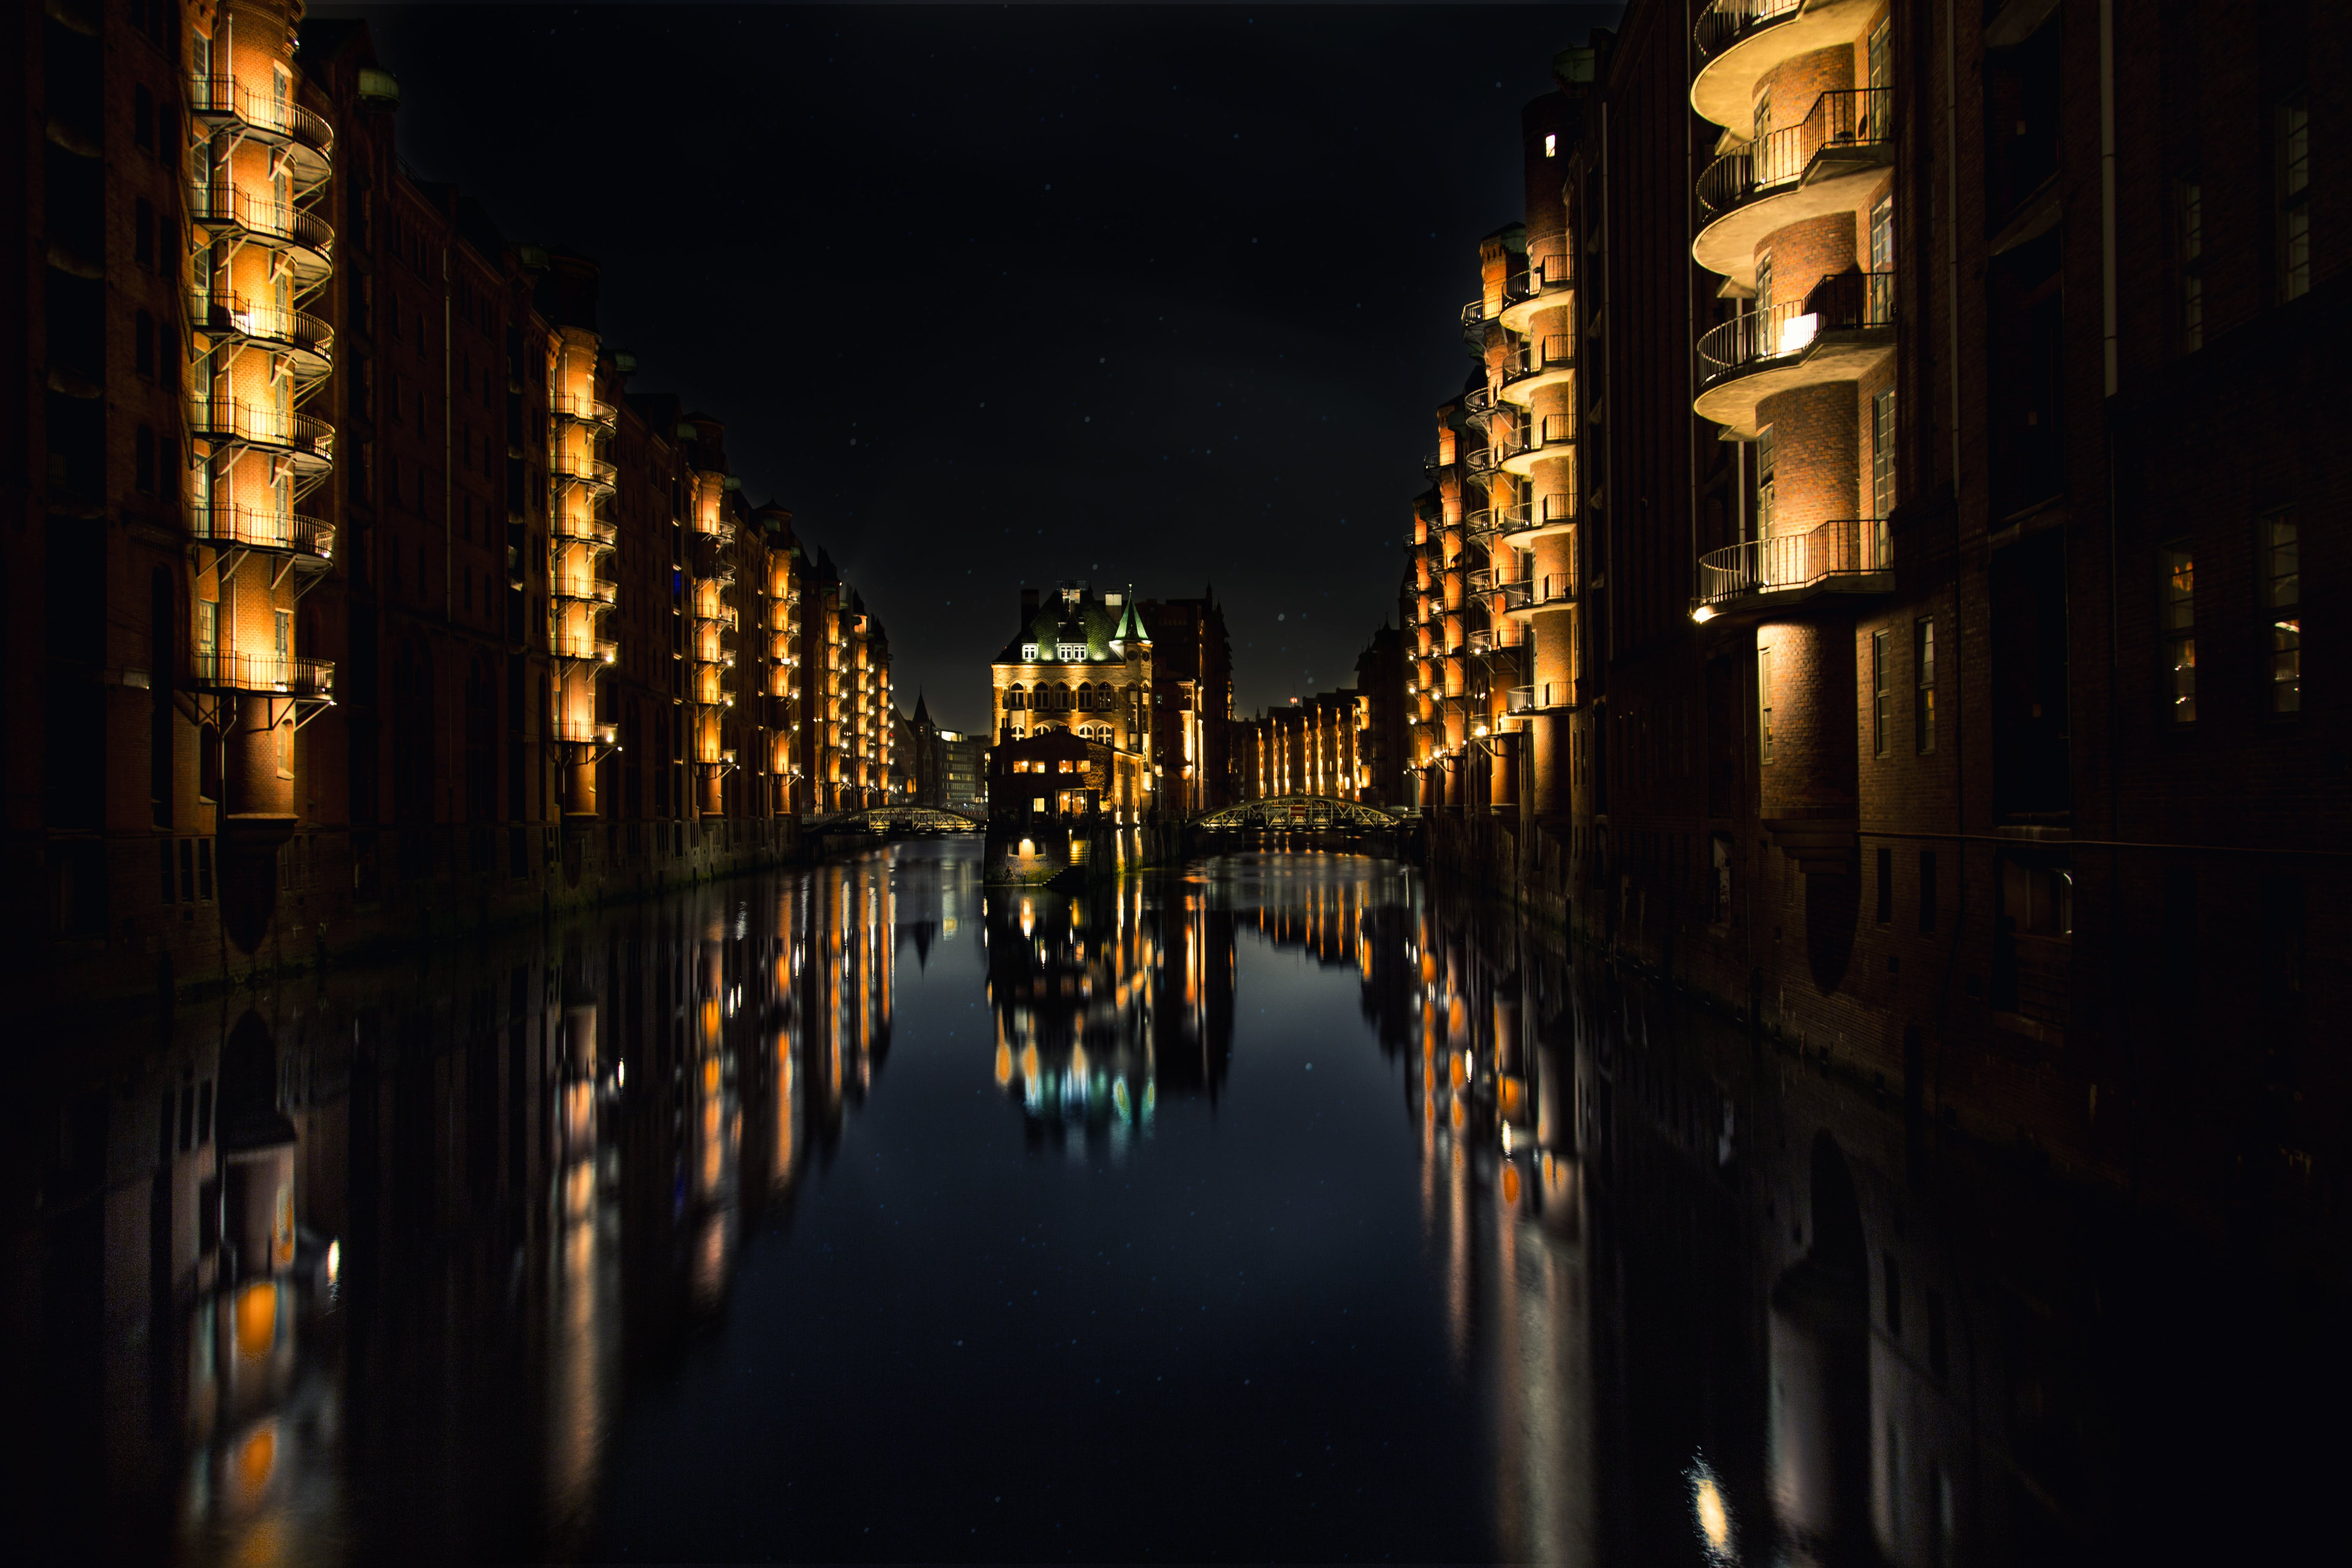 Reflection of Buildings on Water during Nighttime